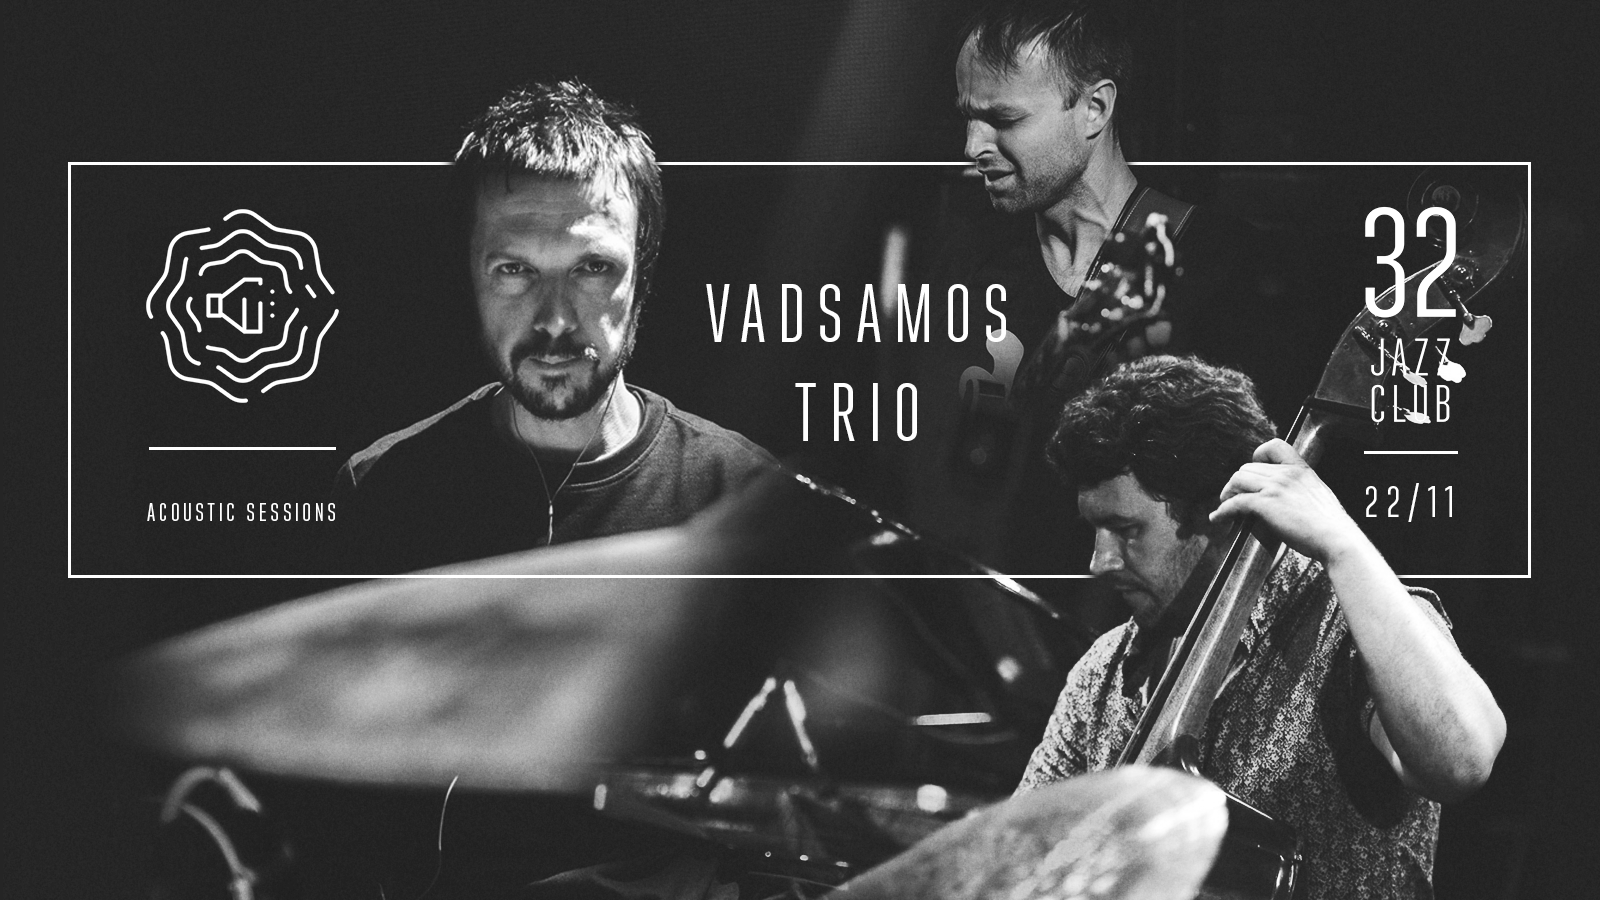 VADSAMOS Trio - Acoustic Sessions